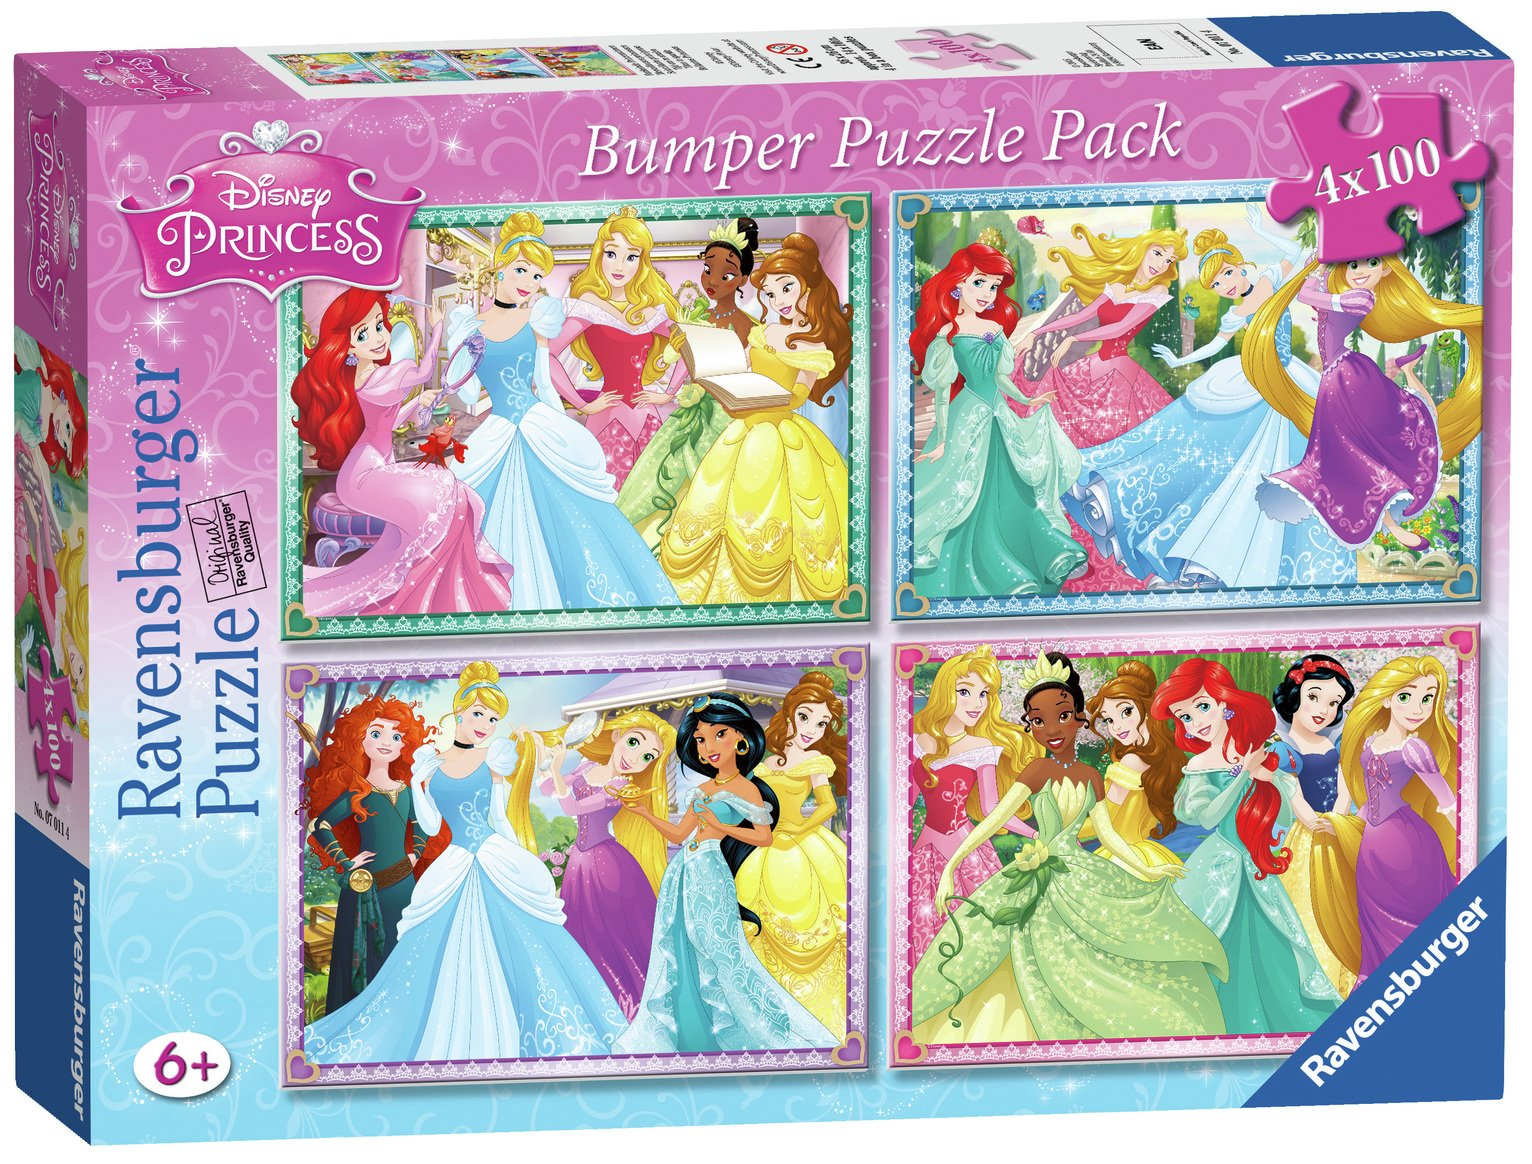 Ravensburger Disney Princess 100 Piece Puzzle - 4 Pack from Ravensburger